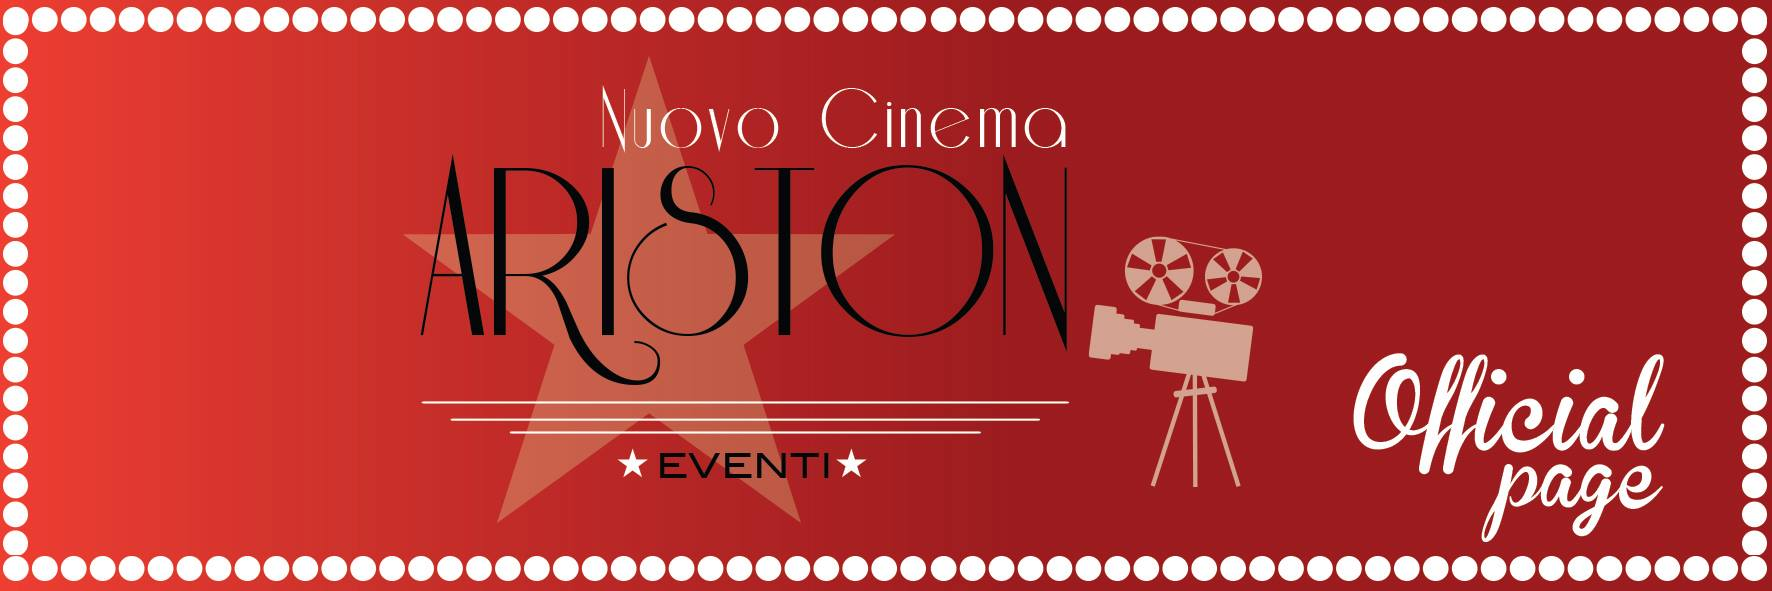 Nuovo Cinema Ariston